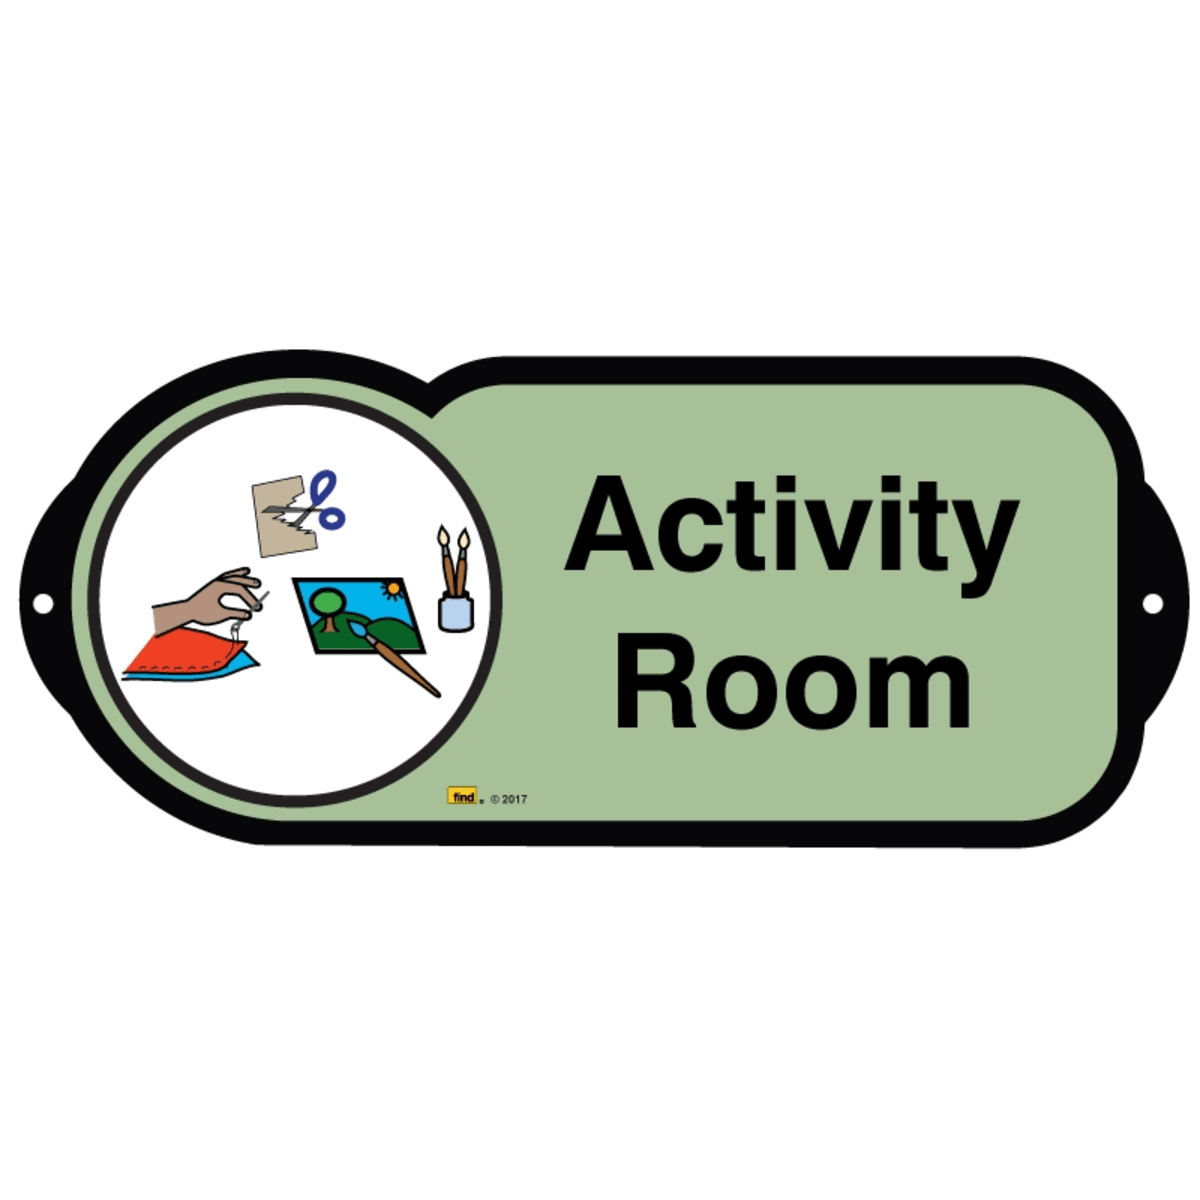 Activity Room sign for autism and learning disabilities - signage